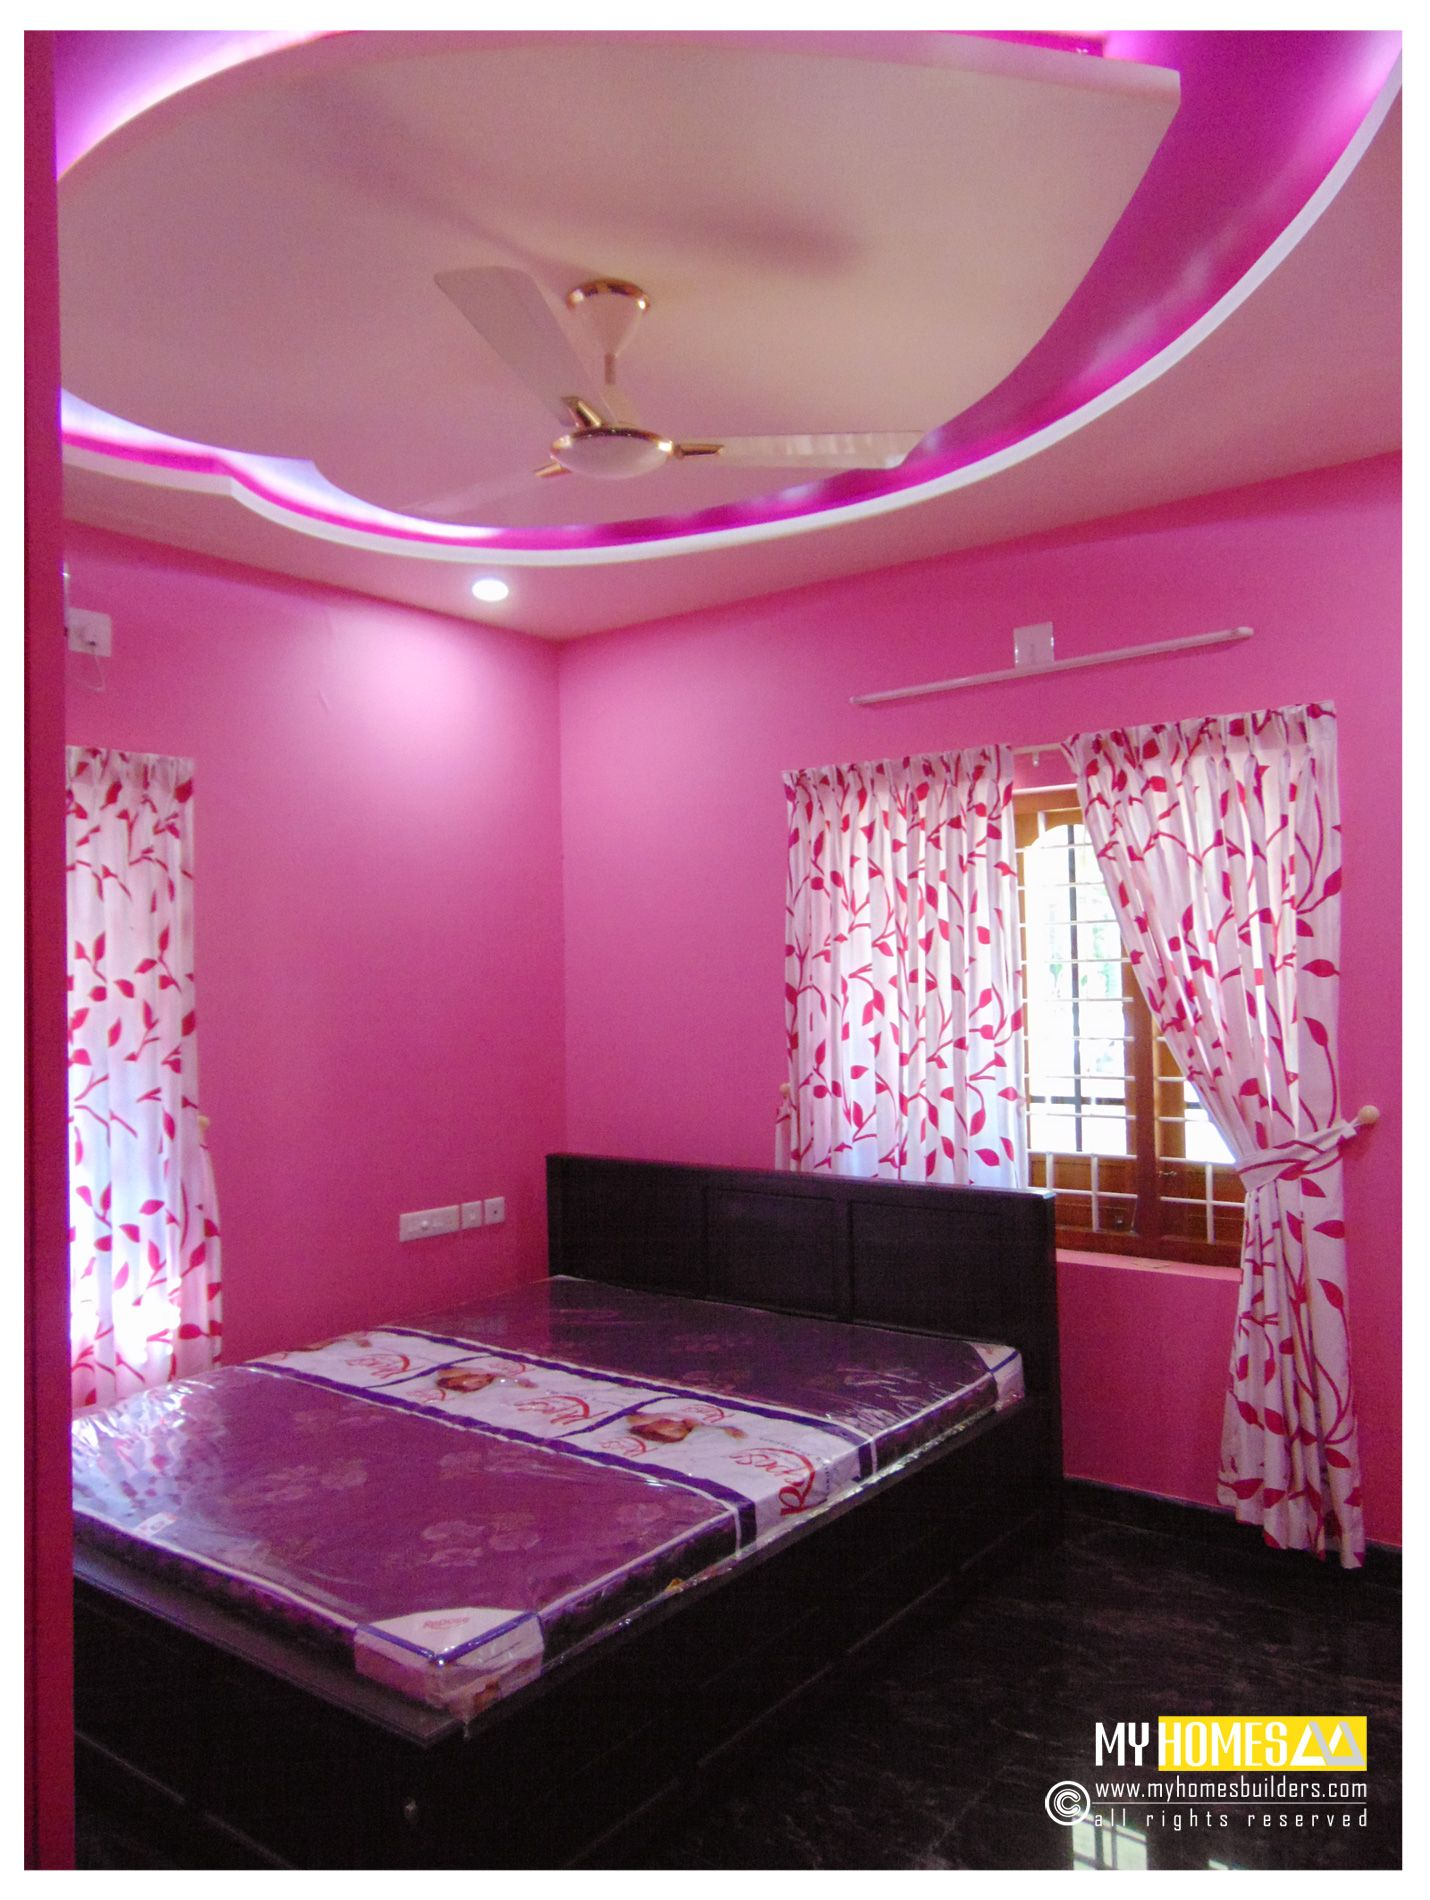 Kerala bedroom interior designs best bed room interior for New style bedroom design